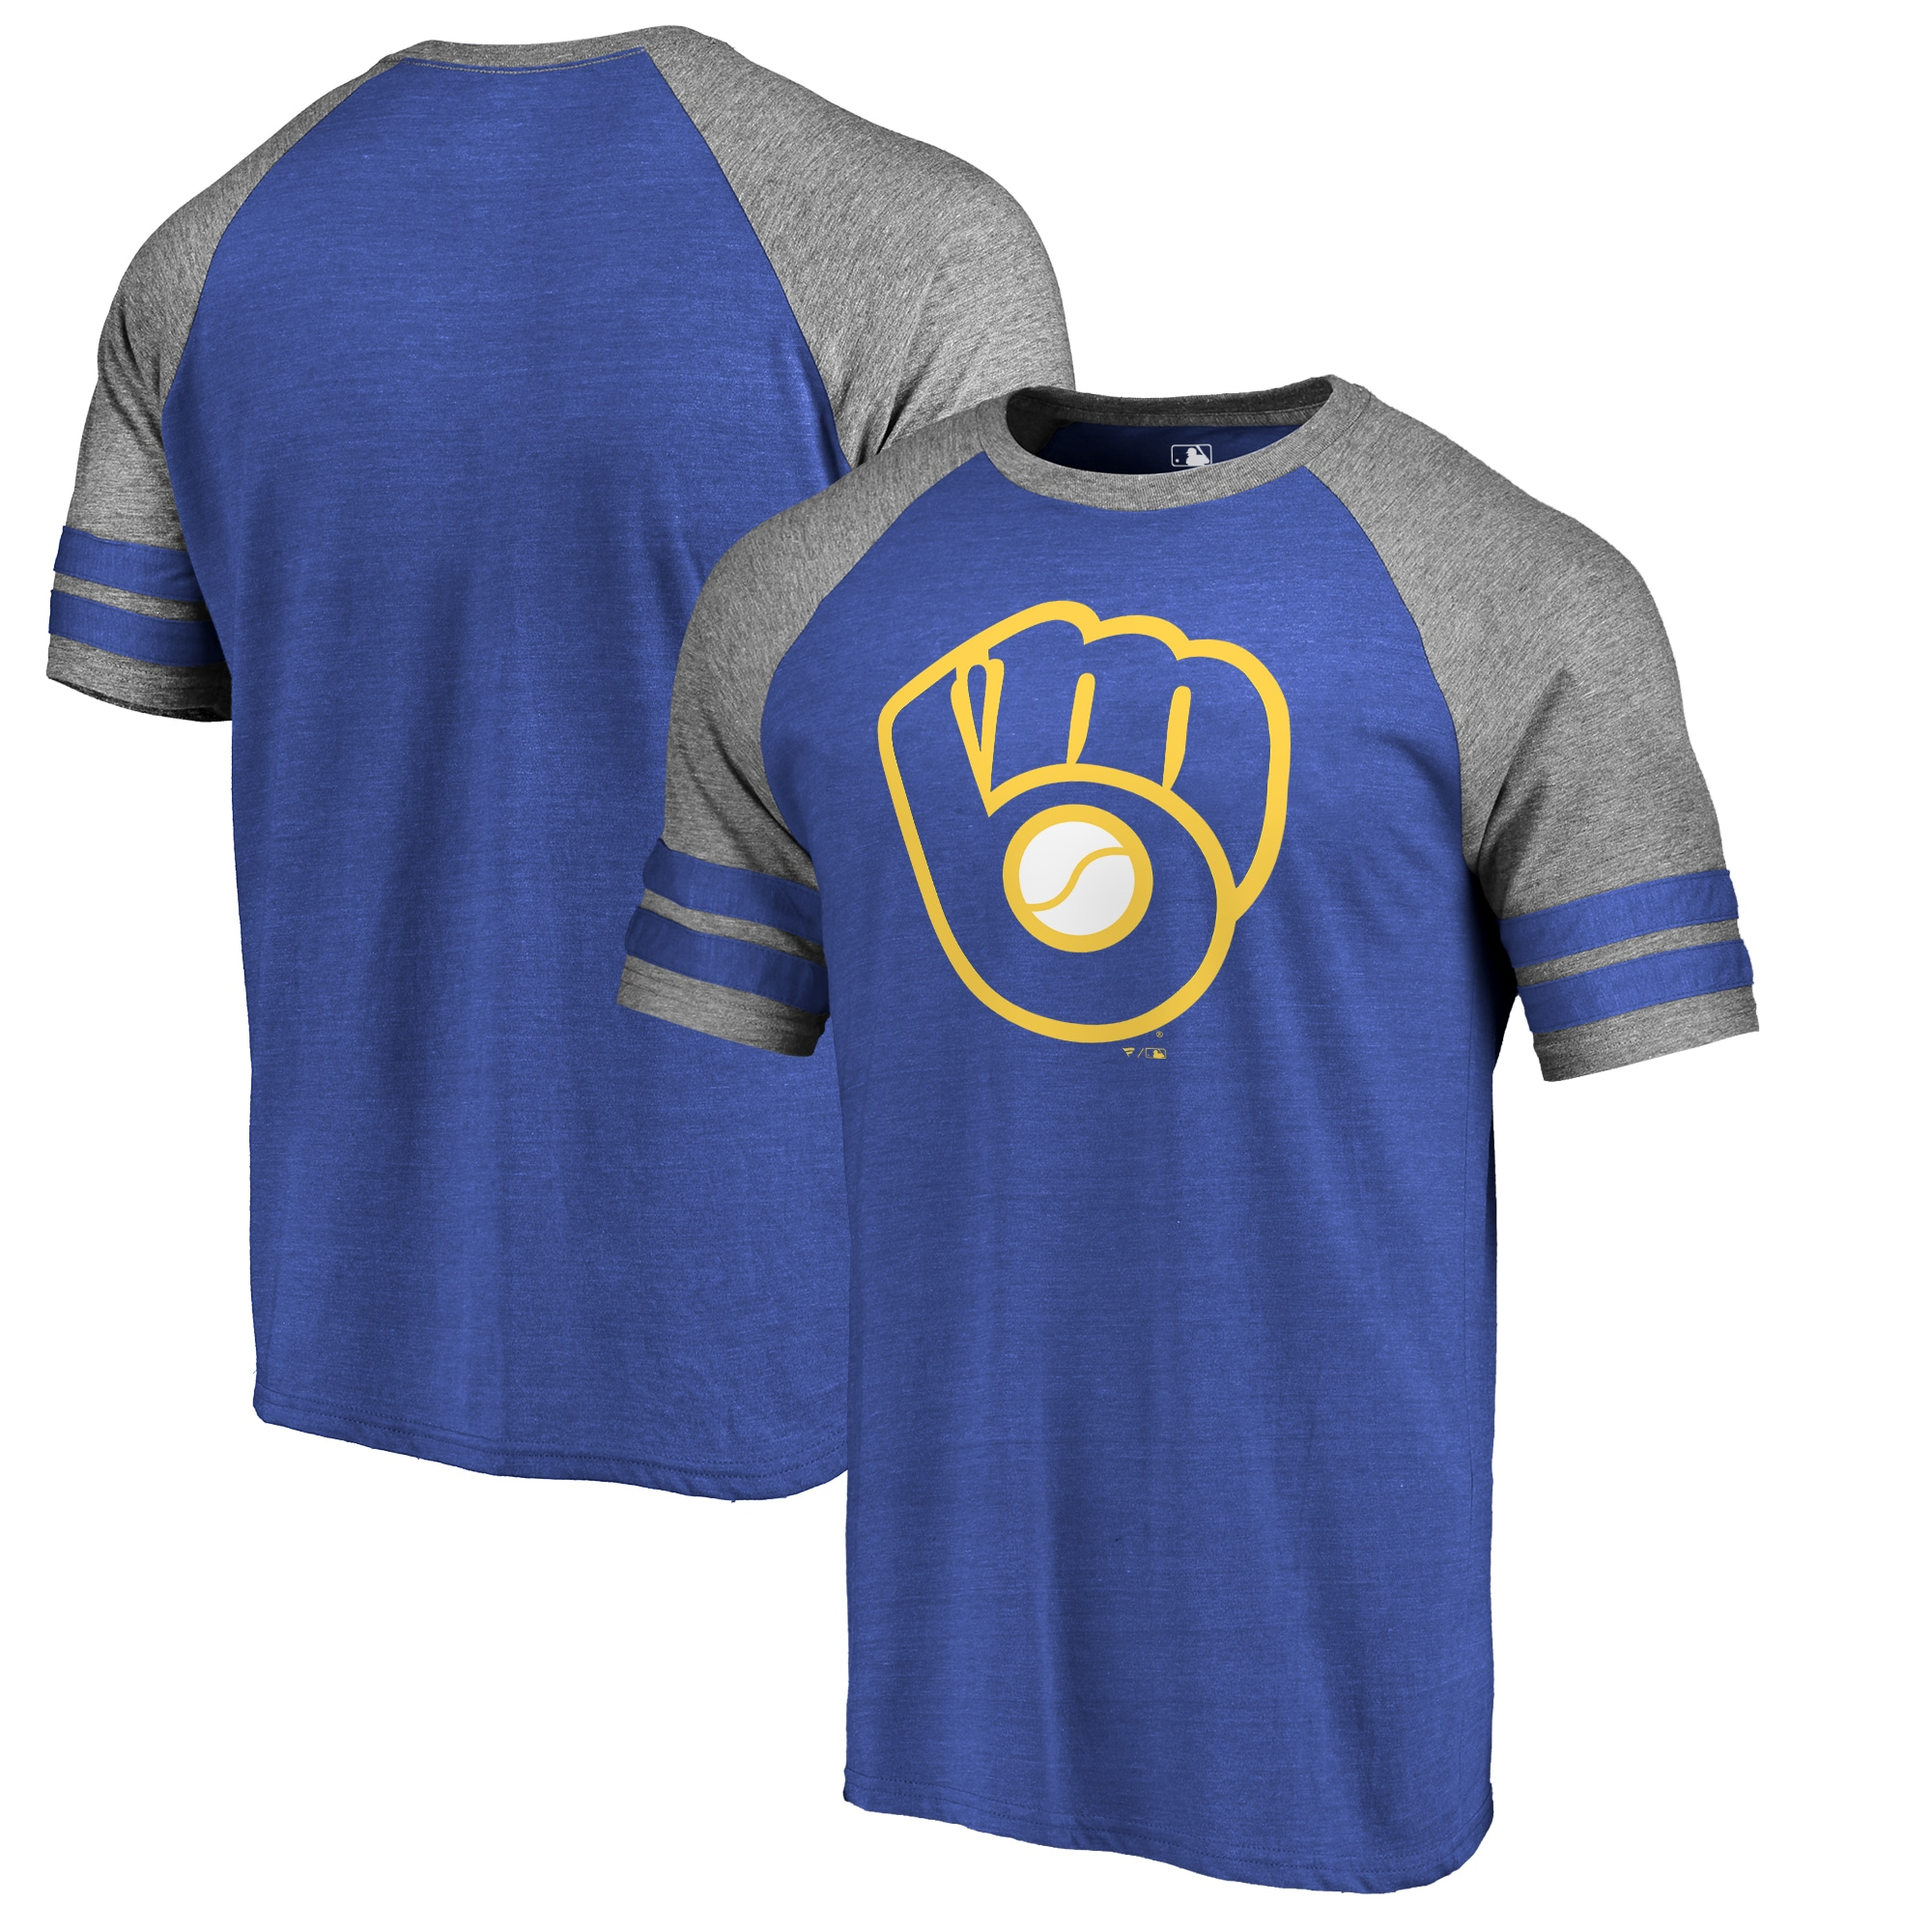 Milwaukee Brewers Fanatics Branded Huntington Cooperstown Collection Tri-Blend T-Shirt - Royal